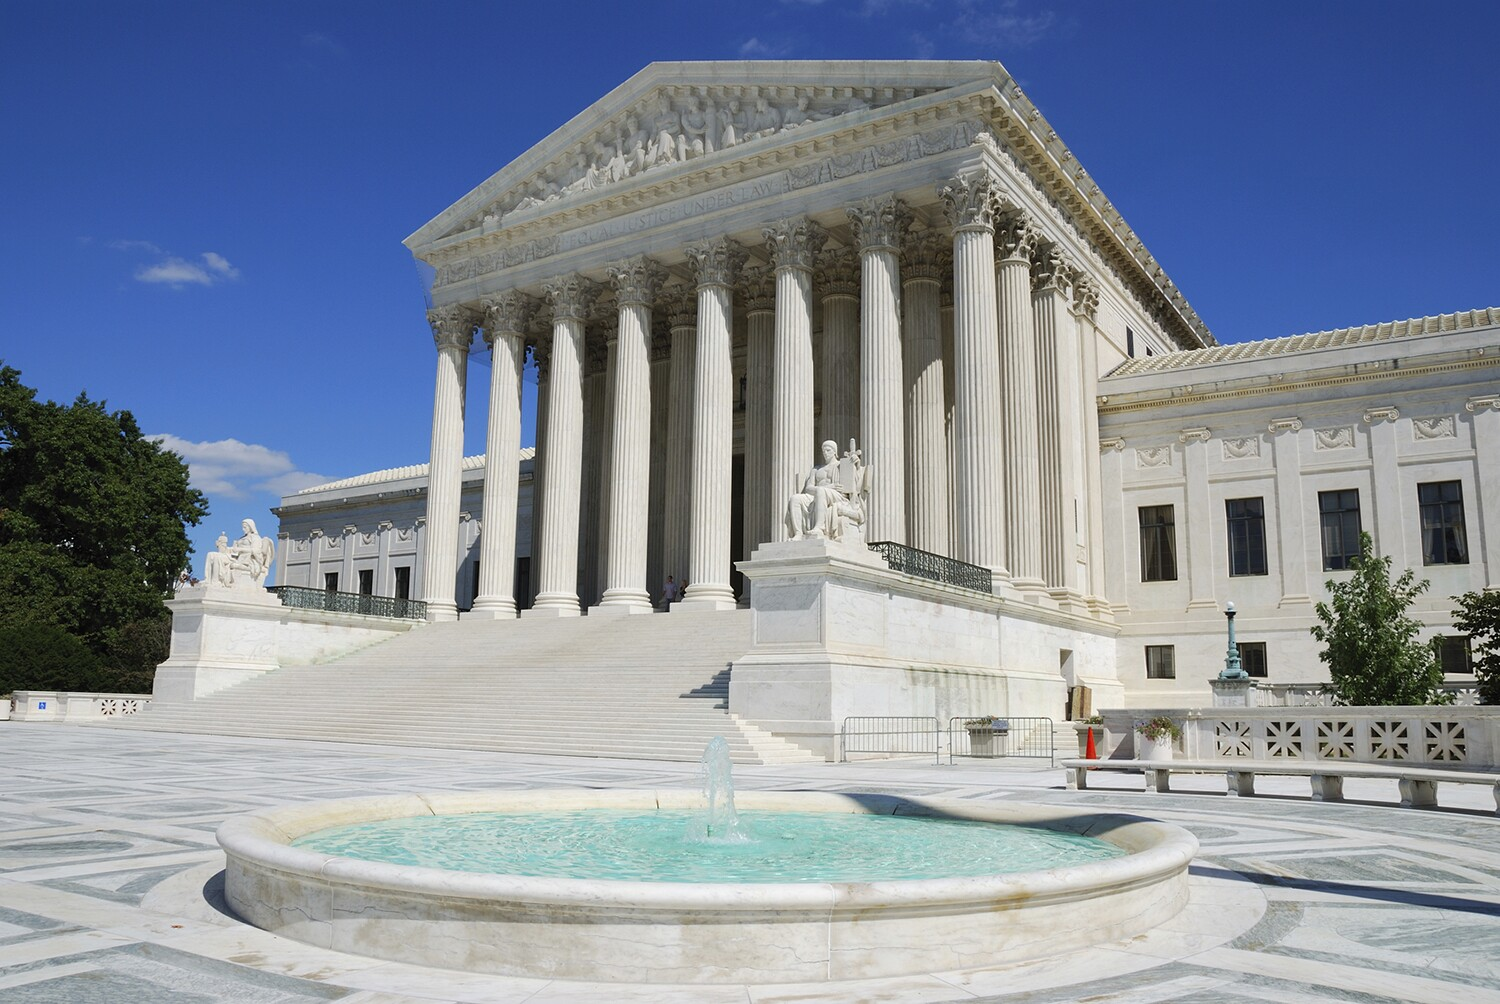 Court refuses to reinstate N C 's voter ID requirement